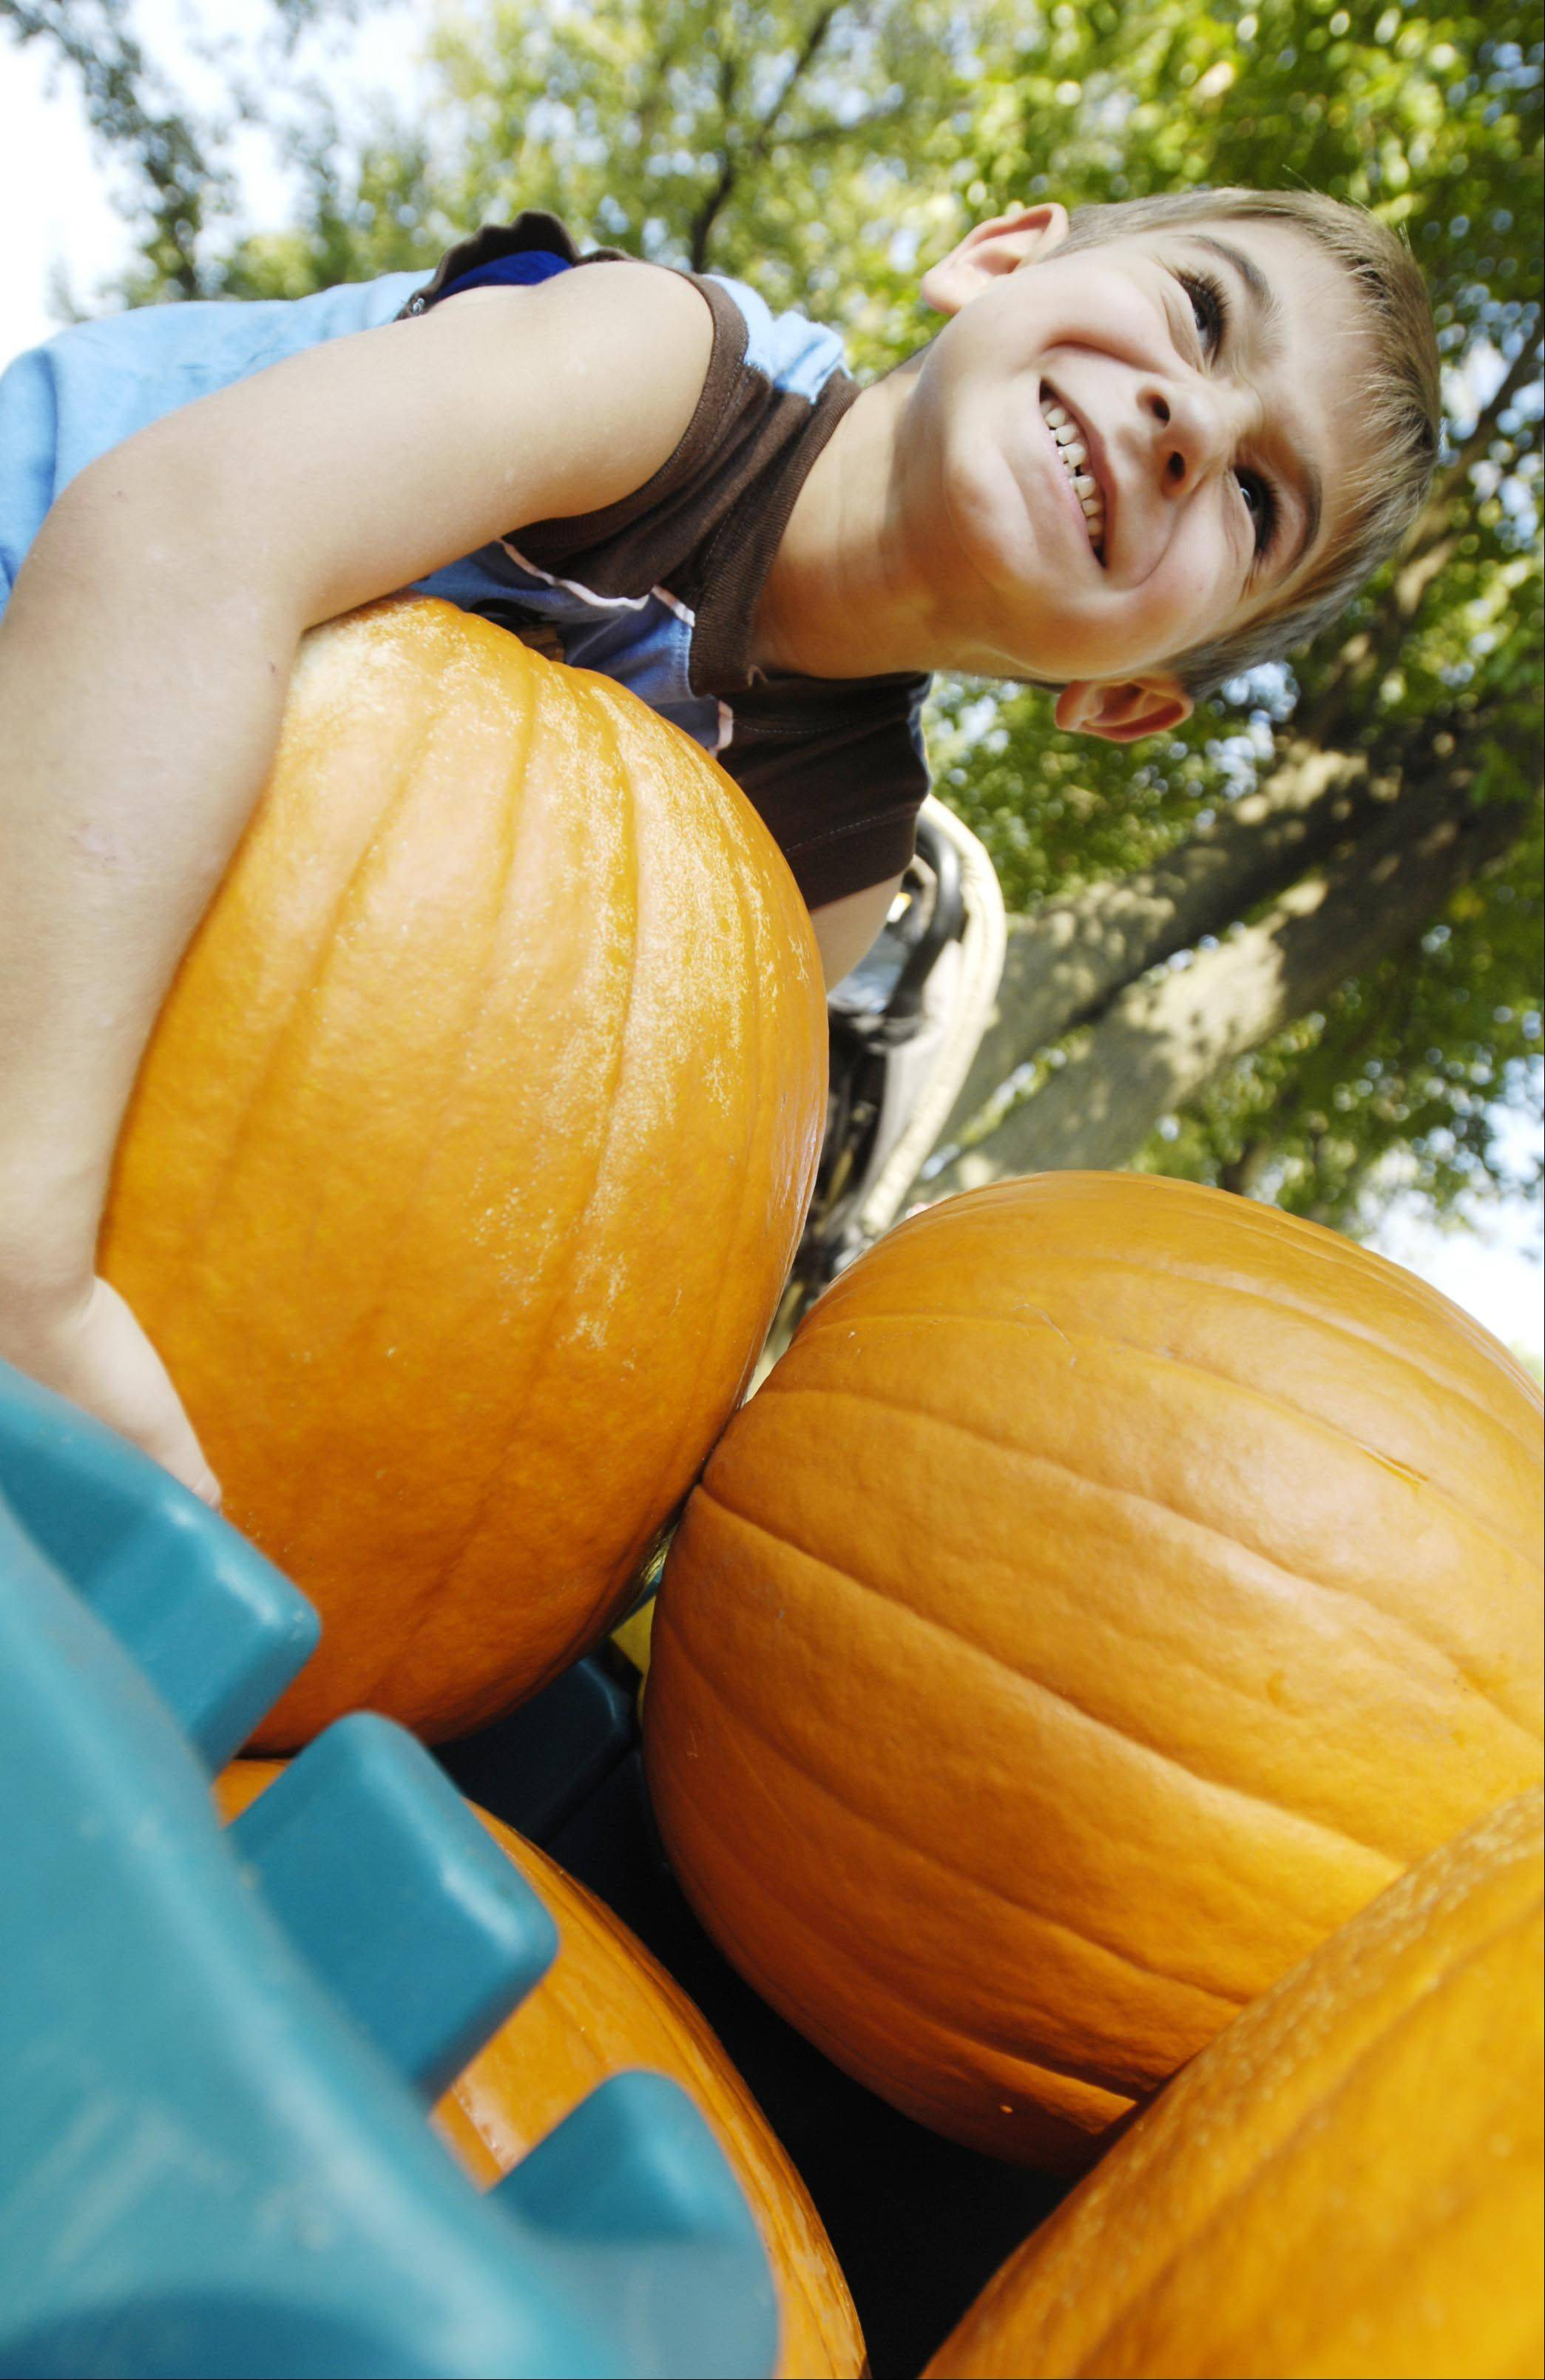 Children 11 and younger will get unlimited kiddie rides and a free pumpkin while supplies last with admission to Heritage Day on Saturday in Bensenville.